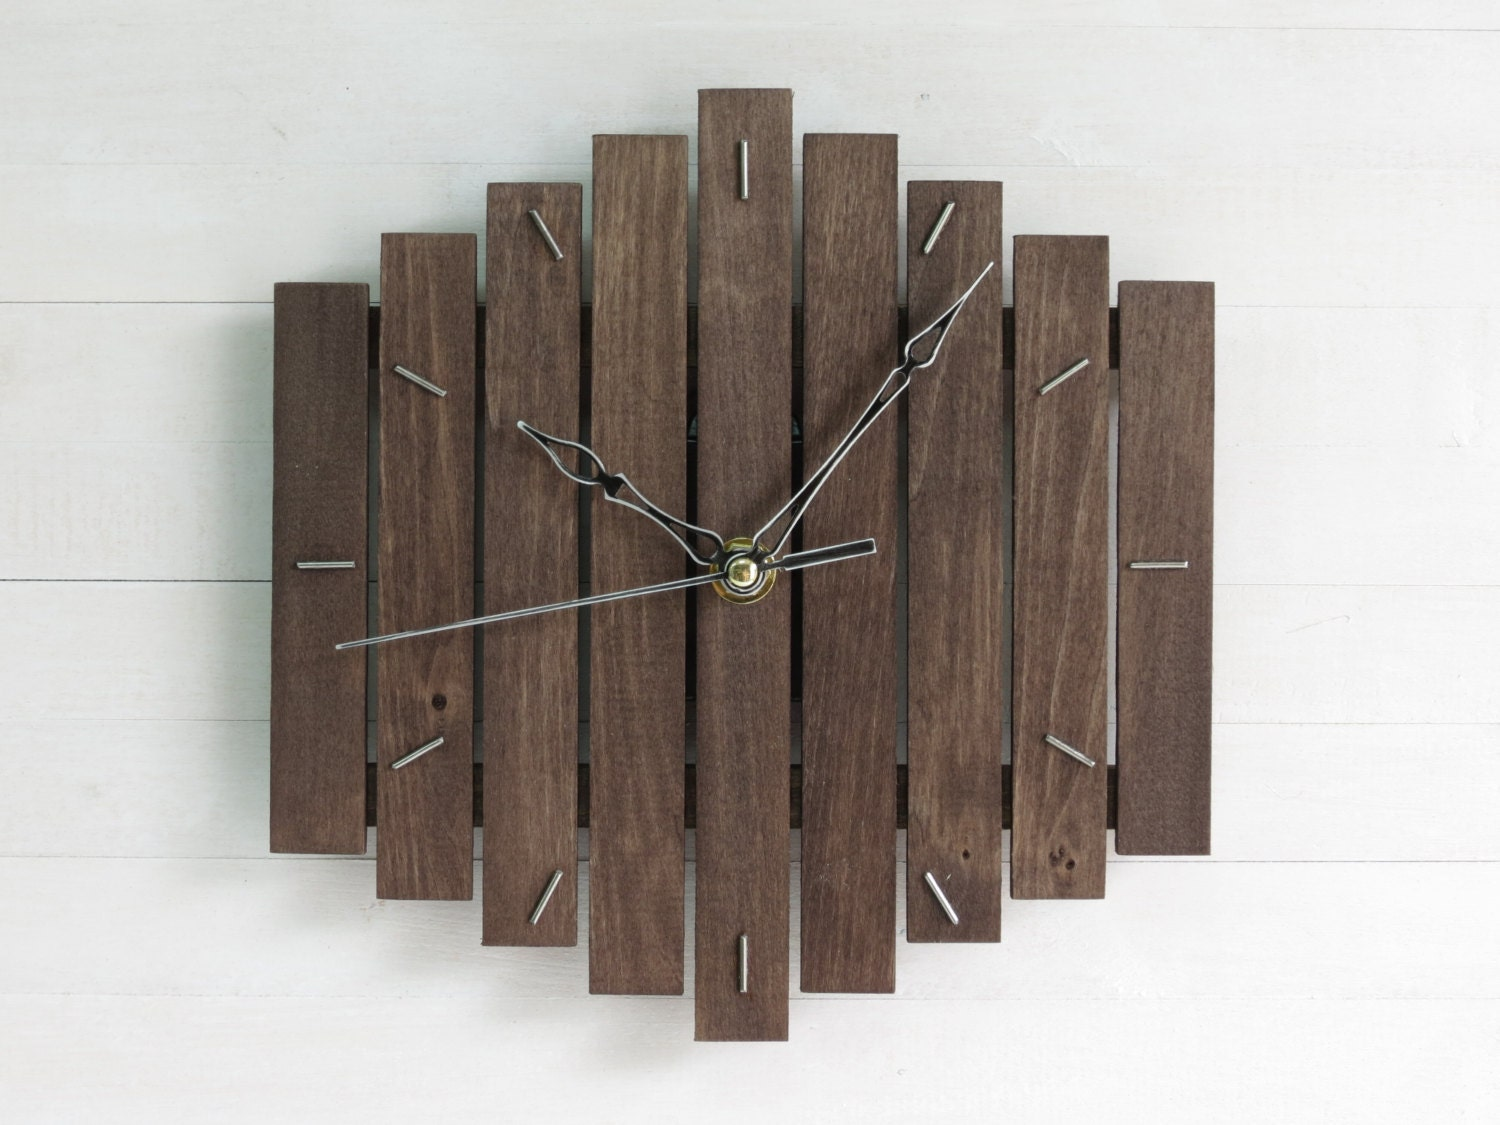 Black wall clock thanksgiving decor wooden decor romb zoom amipublicfo Image collections